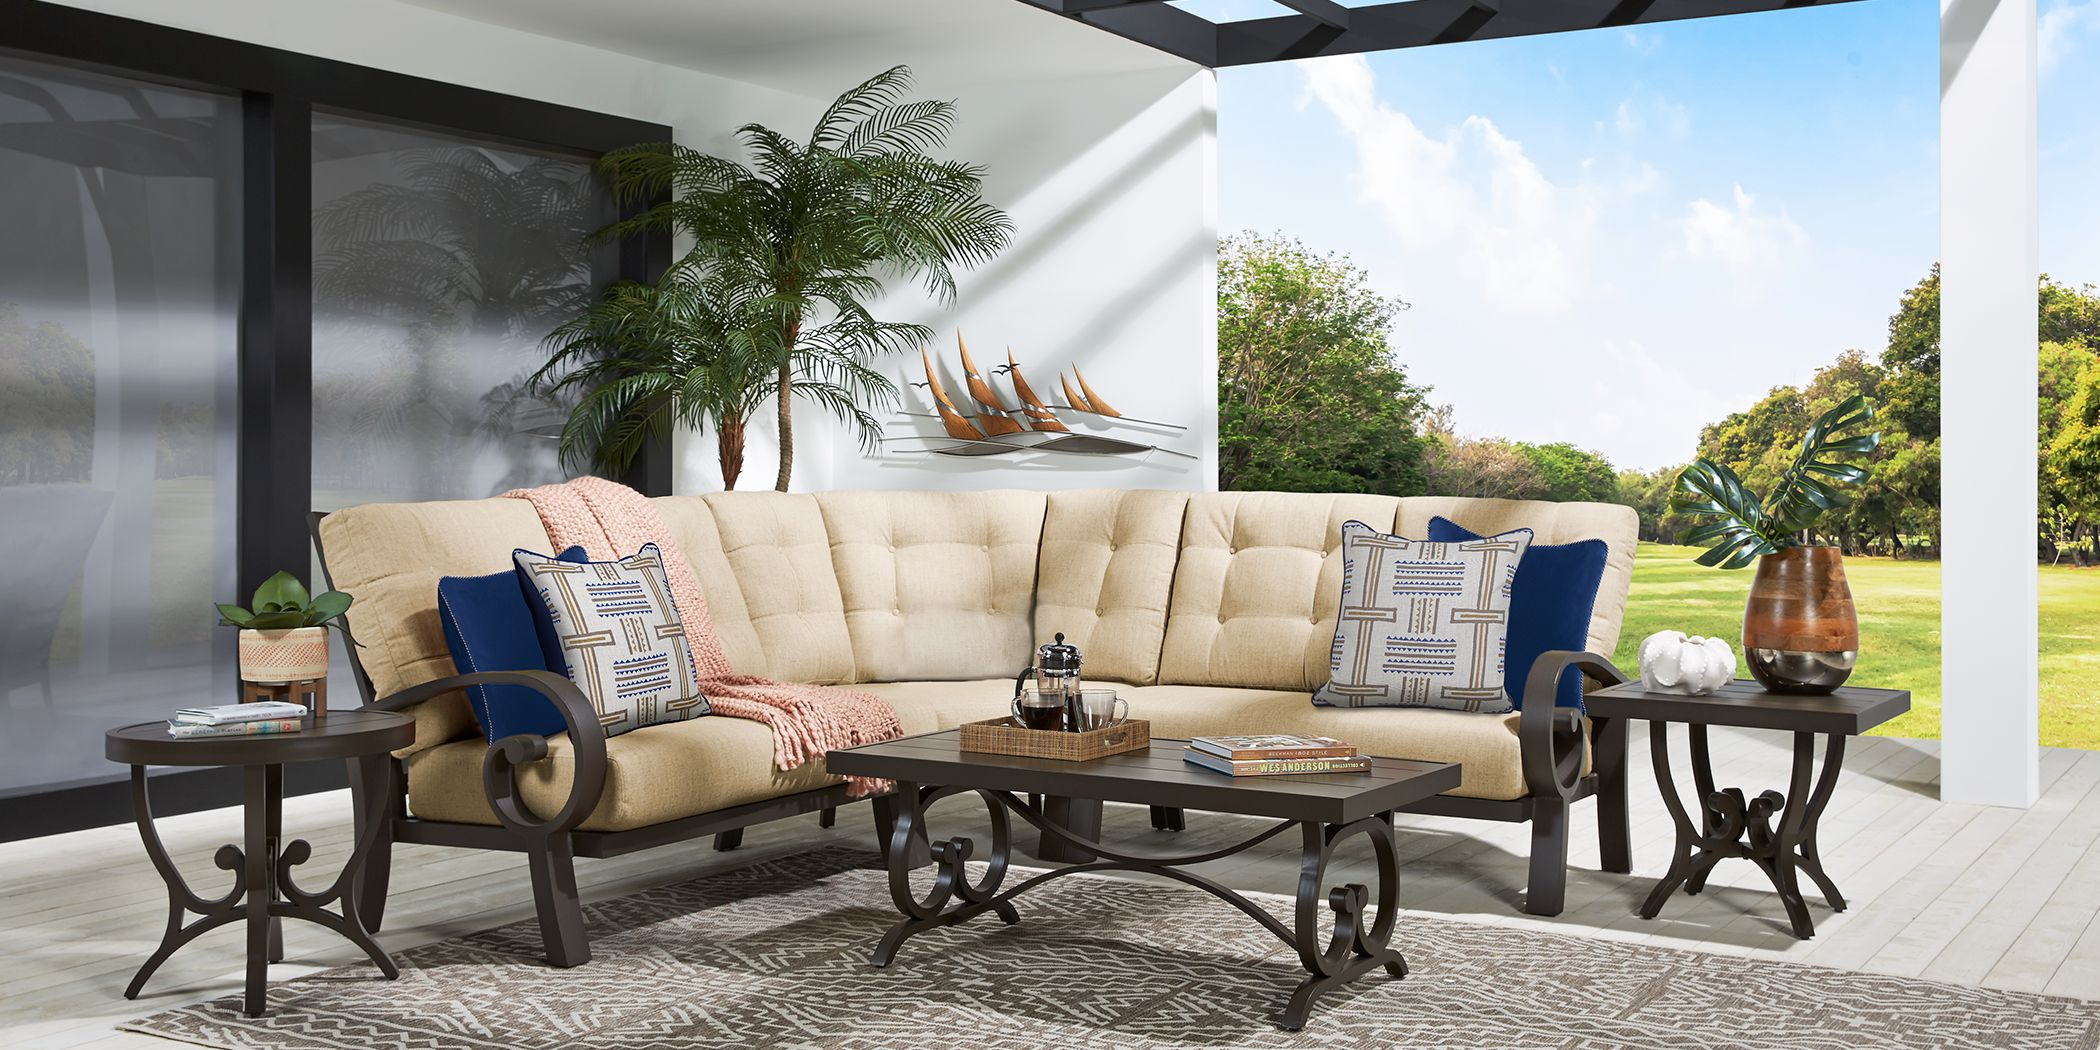 Outdoor Sectional Sofas For The Patio